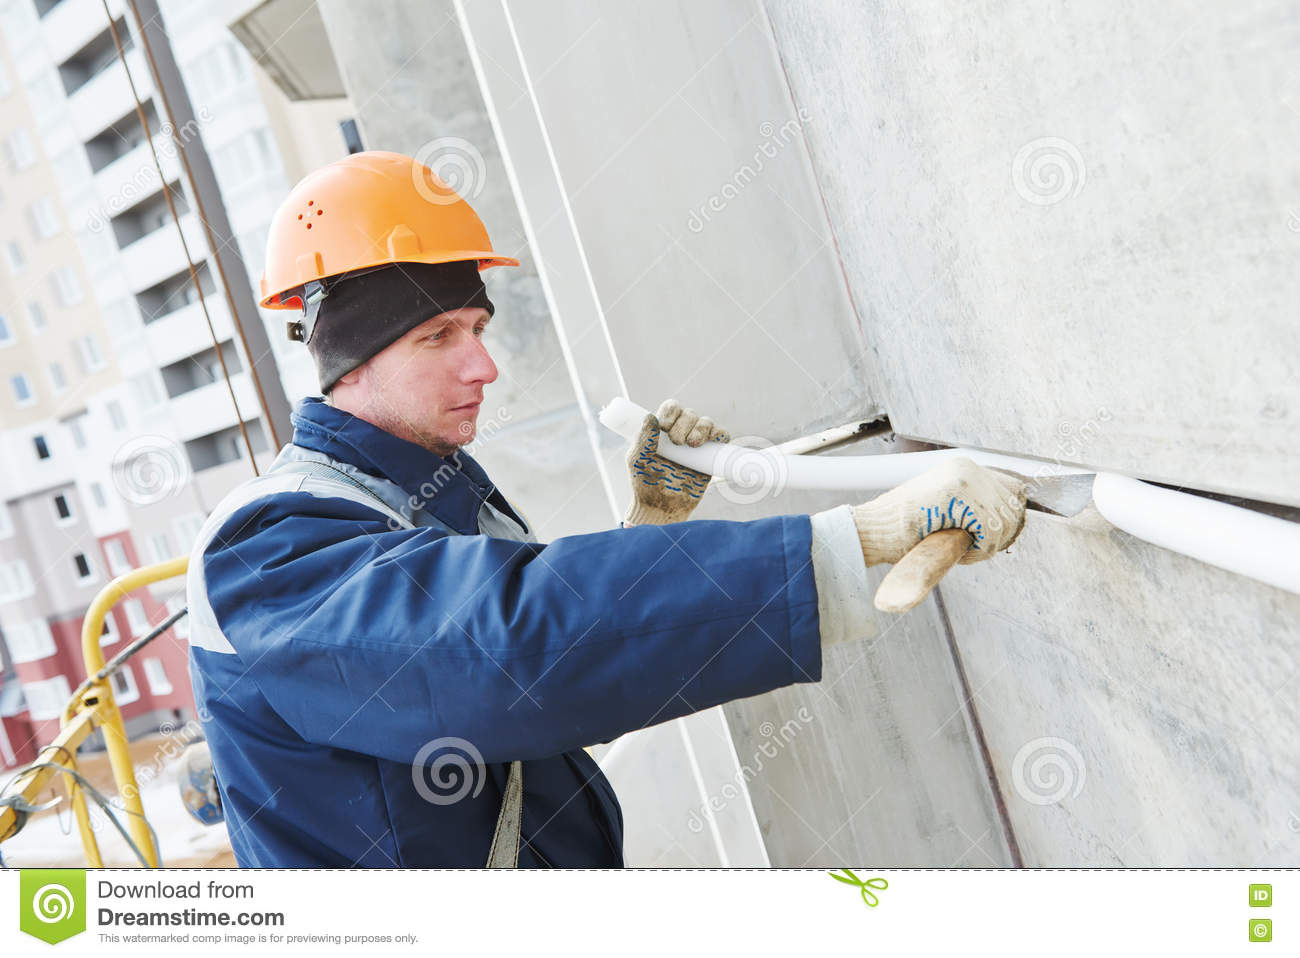 Facade Plasterer Sealing Joint Of Building Wall With Putty Mastic Stock Image Image 71799701